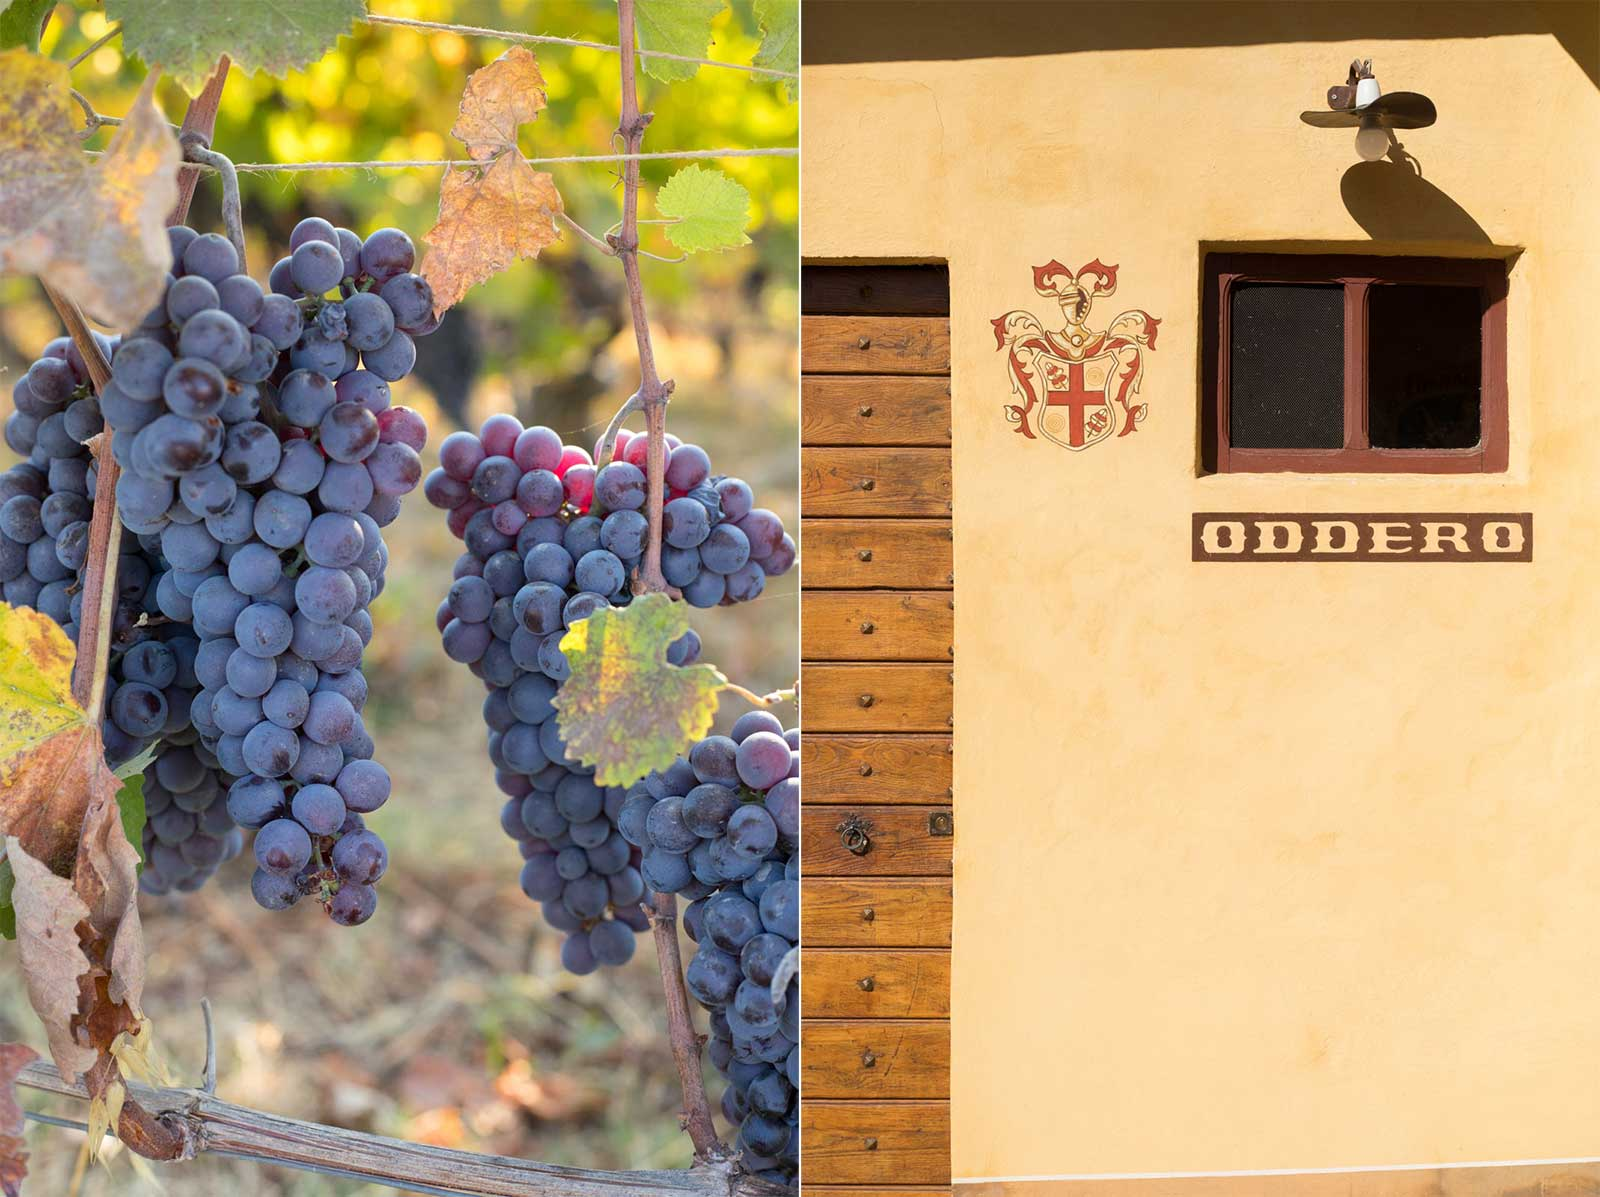 Left: Late season Nebbiolo clusters in the Brunate cru. Right: The classic crest of Oddero at the entrance to the cellar. ©Kevin Day/Opening a Bottle